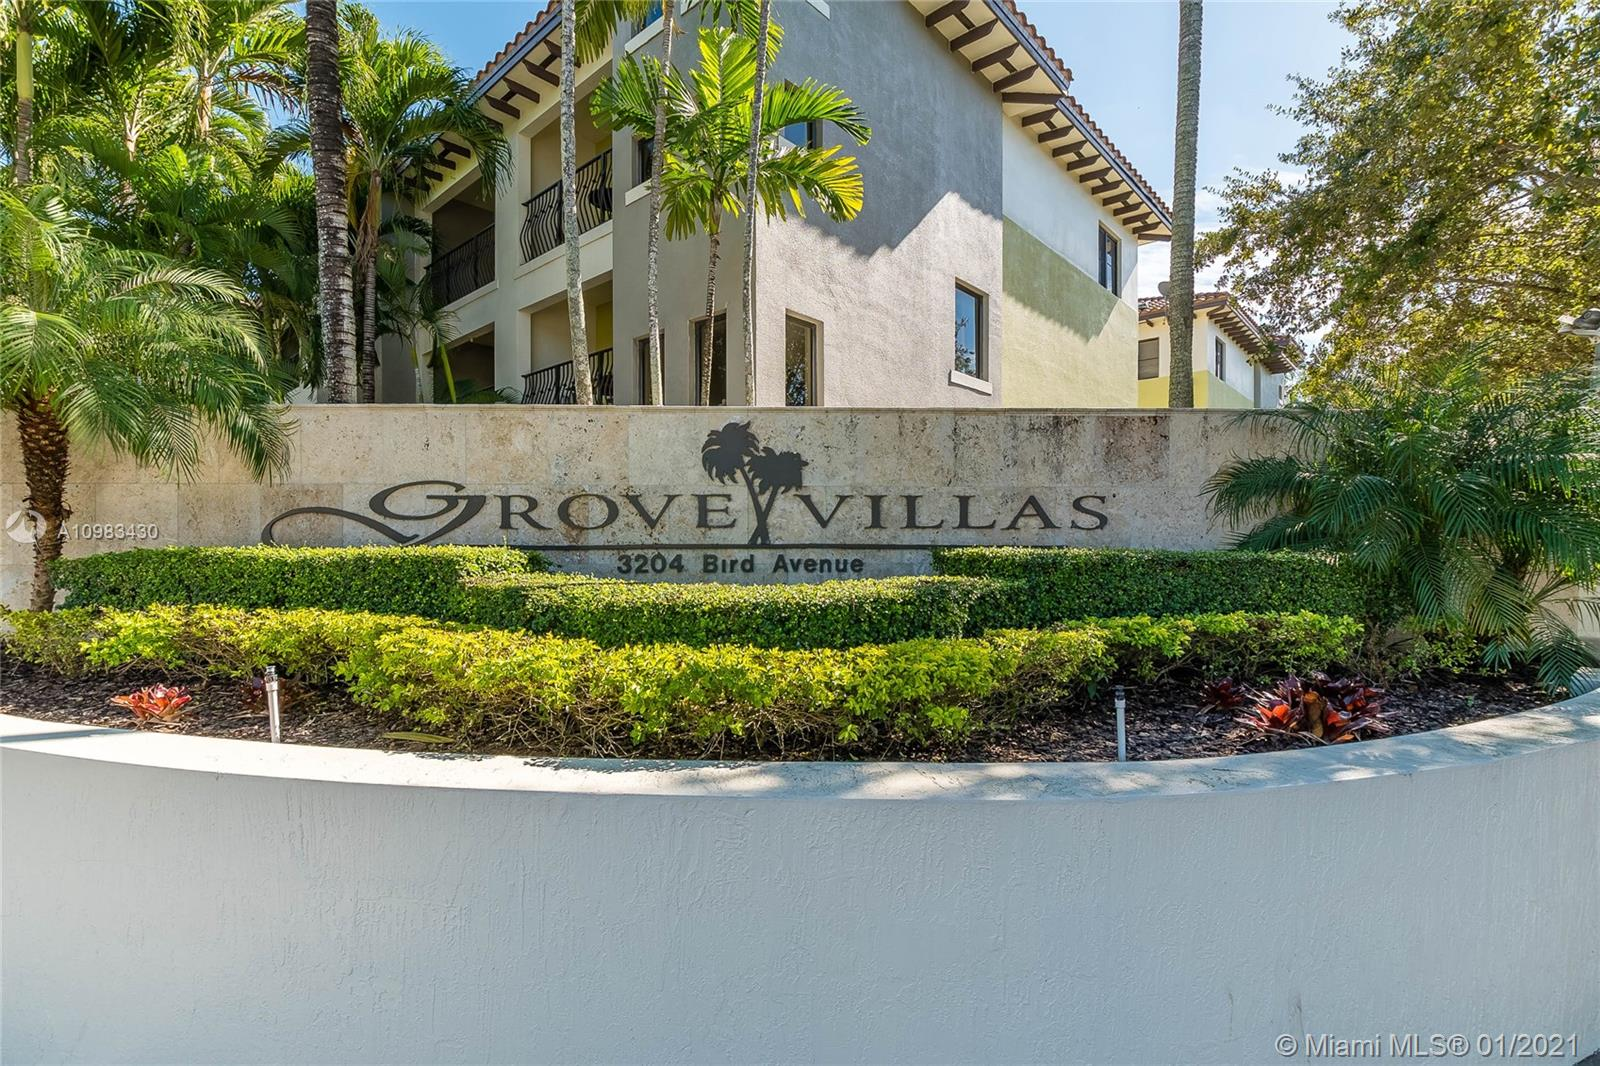 GROVE VILLAS CONDO LOCATED ON THE CORNER OF MCDONALD AND BIRD AVENUE IS THE PERFECT PLACE TO CALL HOME IN COCONUT GROVE.  2 PRIMARY BEDROOMS ON THE TOP FLOOR WITH A NICE LIVING LEVEL THAT CONTAINS THE OPEN KITCHEN, LIVING/DINING AREA, TWO BALCONIES AND A HALF BATHROOM.  THE FIRST FLOOR HAS AN OFFICE THAT COULD BE TURNED INTO A 3RD BEDROOM WITH HALF BATH, PRIVATE PATIO AND 2 CAR GARAGE.  TENANT OCCUPIED, REQUESTING 48-72 HOUR ADVANCE SHOWING REQUEST.  LEASE ENDS 4/30/2021 PAYING #2950/MONTH